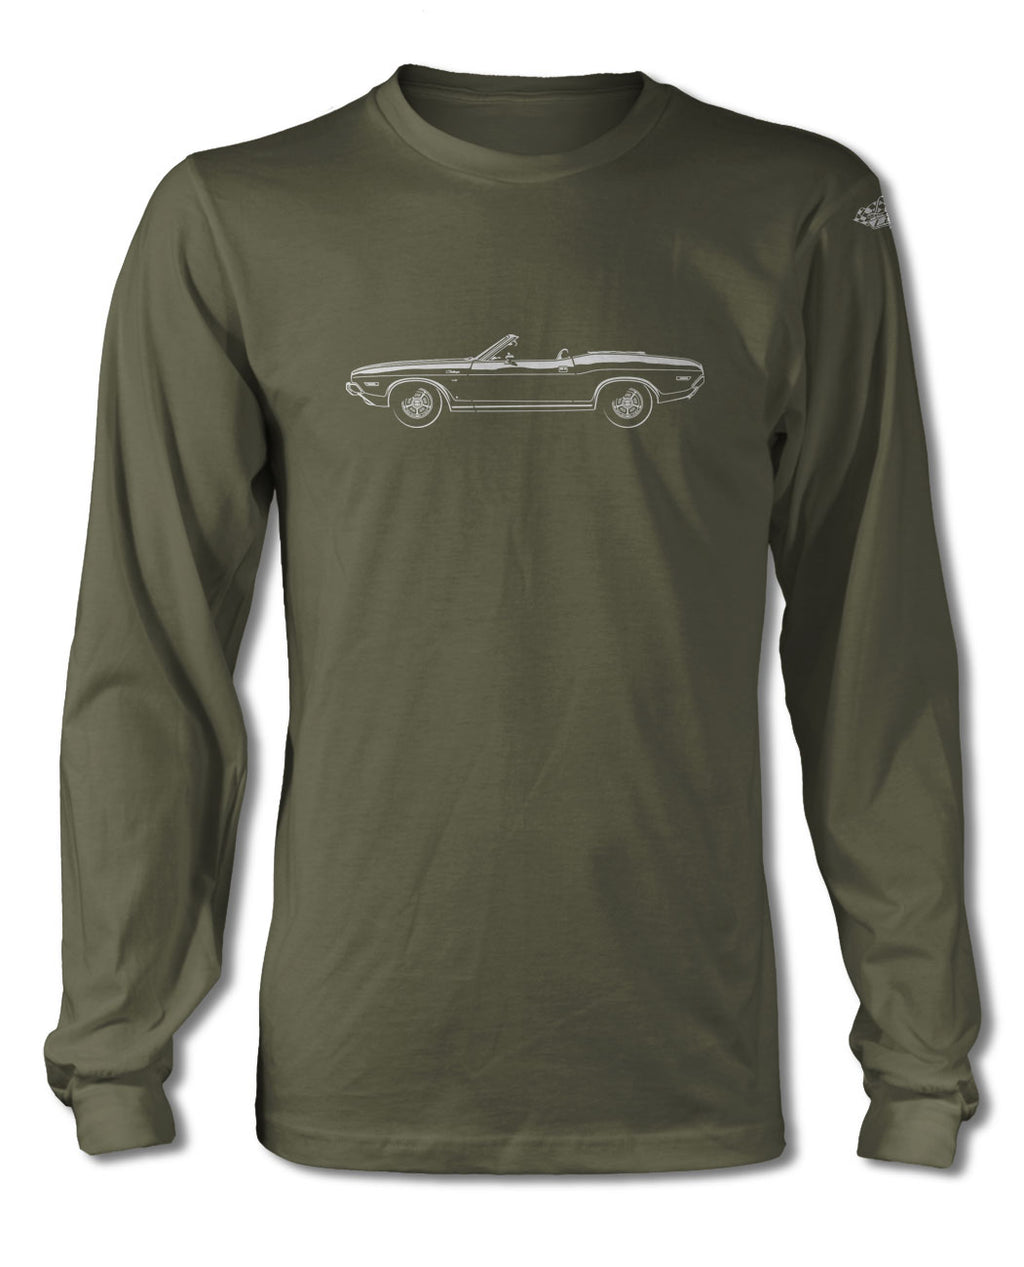 1970 Dodge Challenger Base Convertible T-Shirt - Long Sleeves - Side View